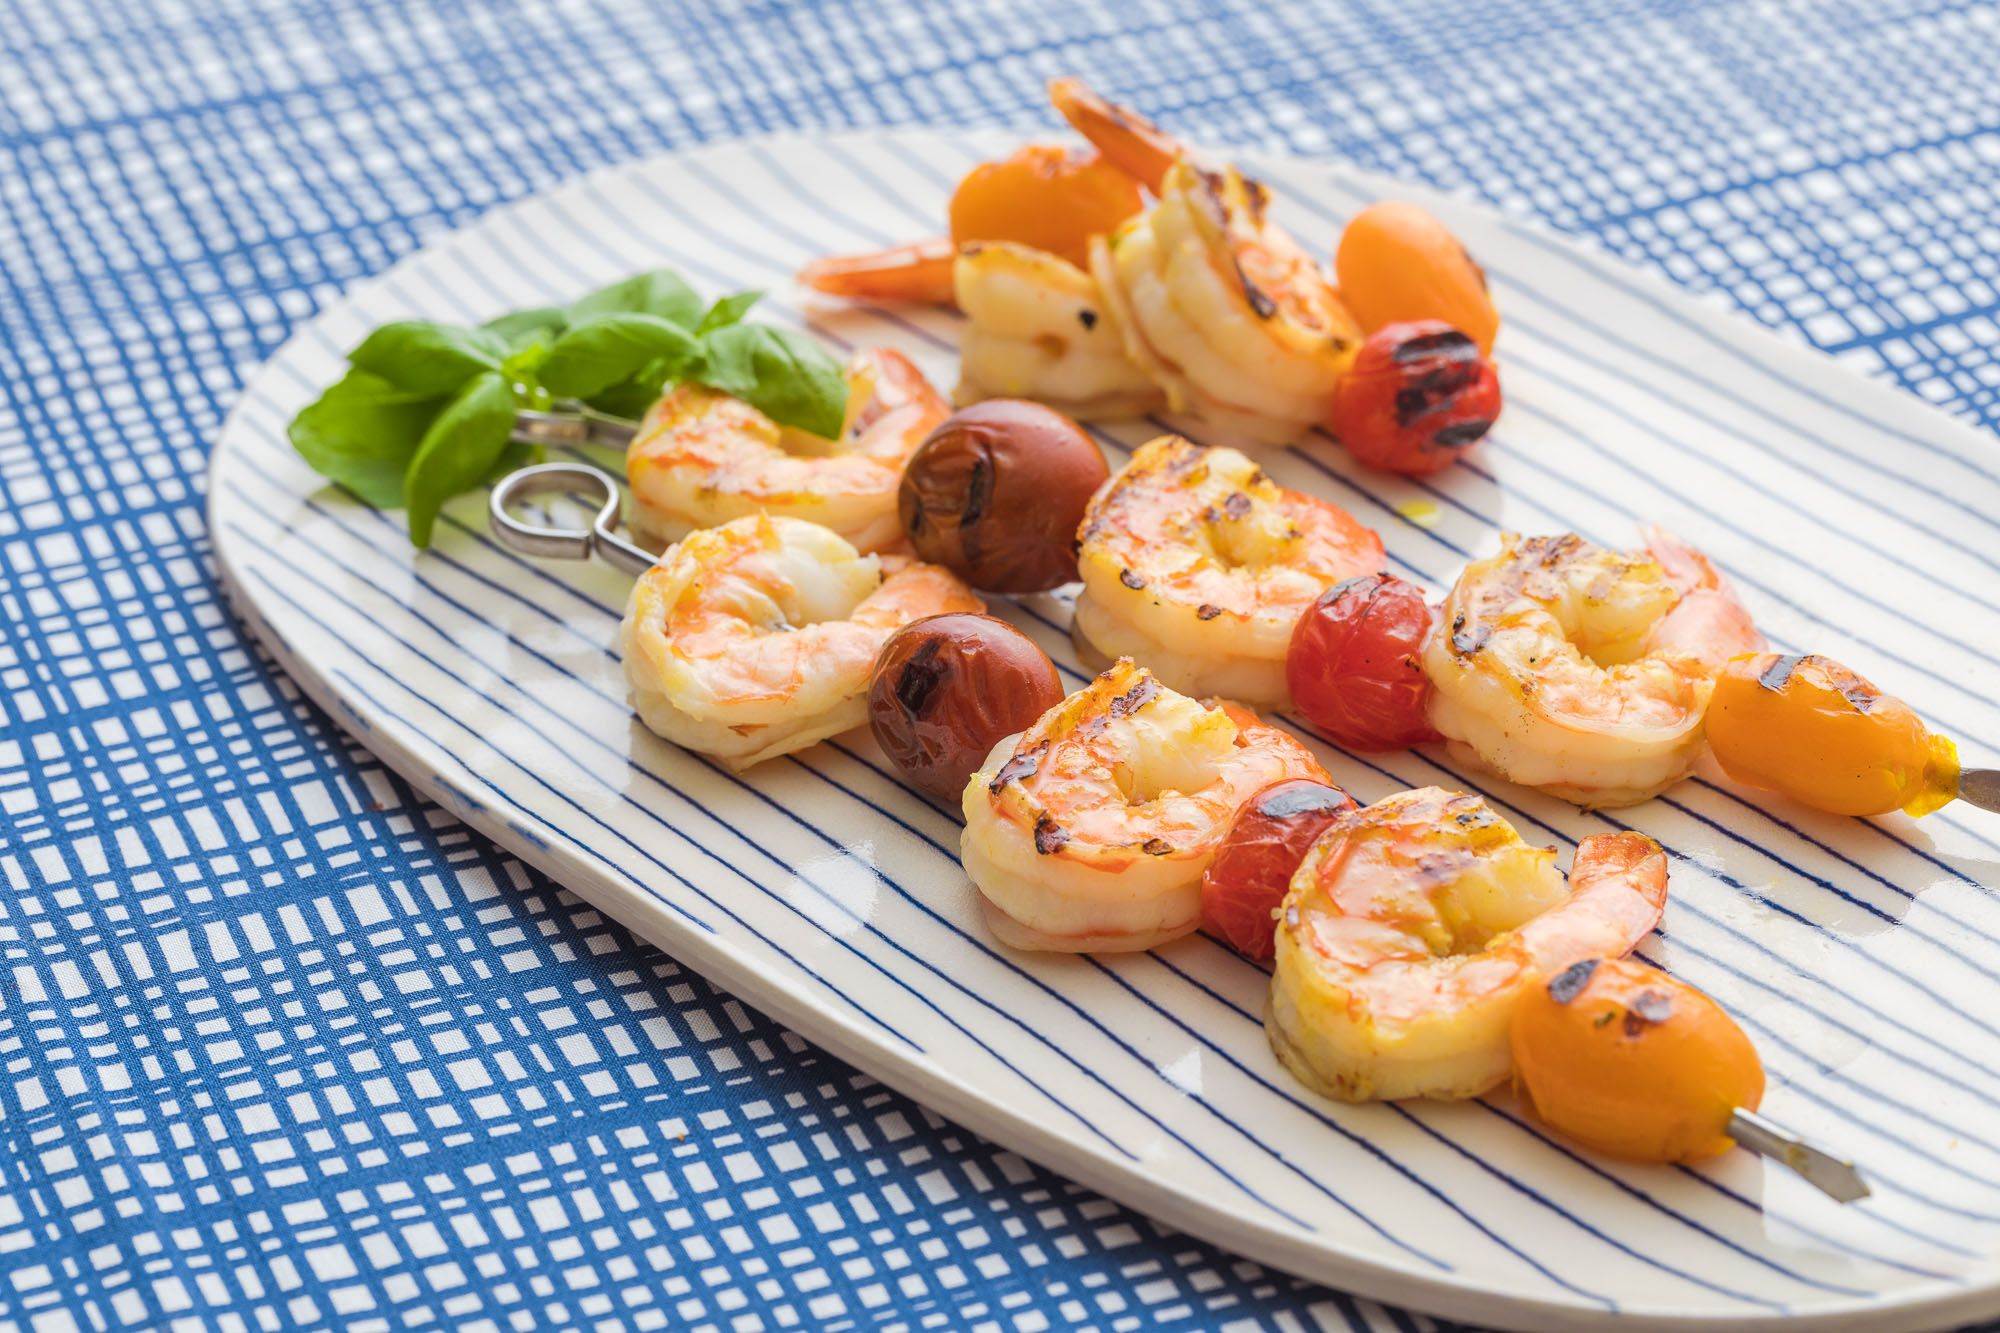 Cooking recipes: grilled-shrimp-skewers cooked with Bertolli olive oil. Extra Virgin Olive Oil.